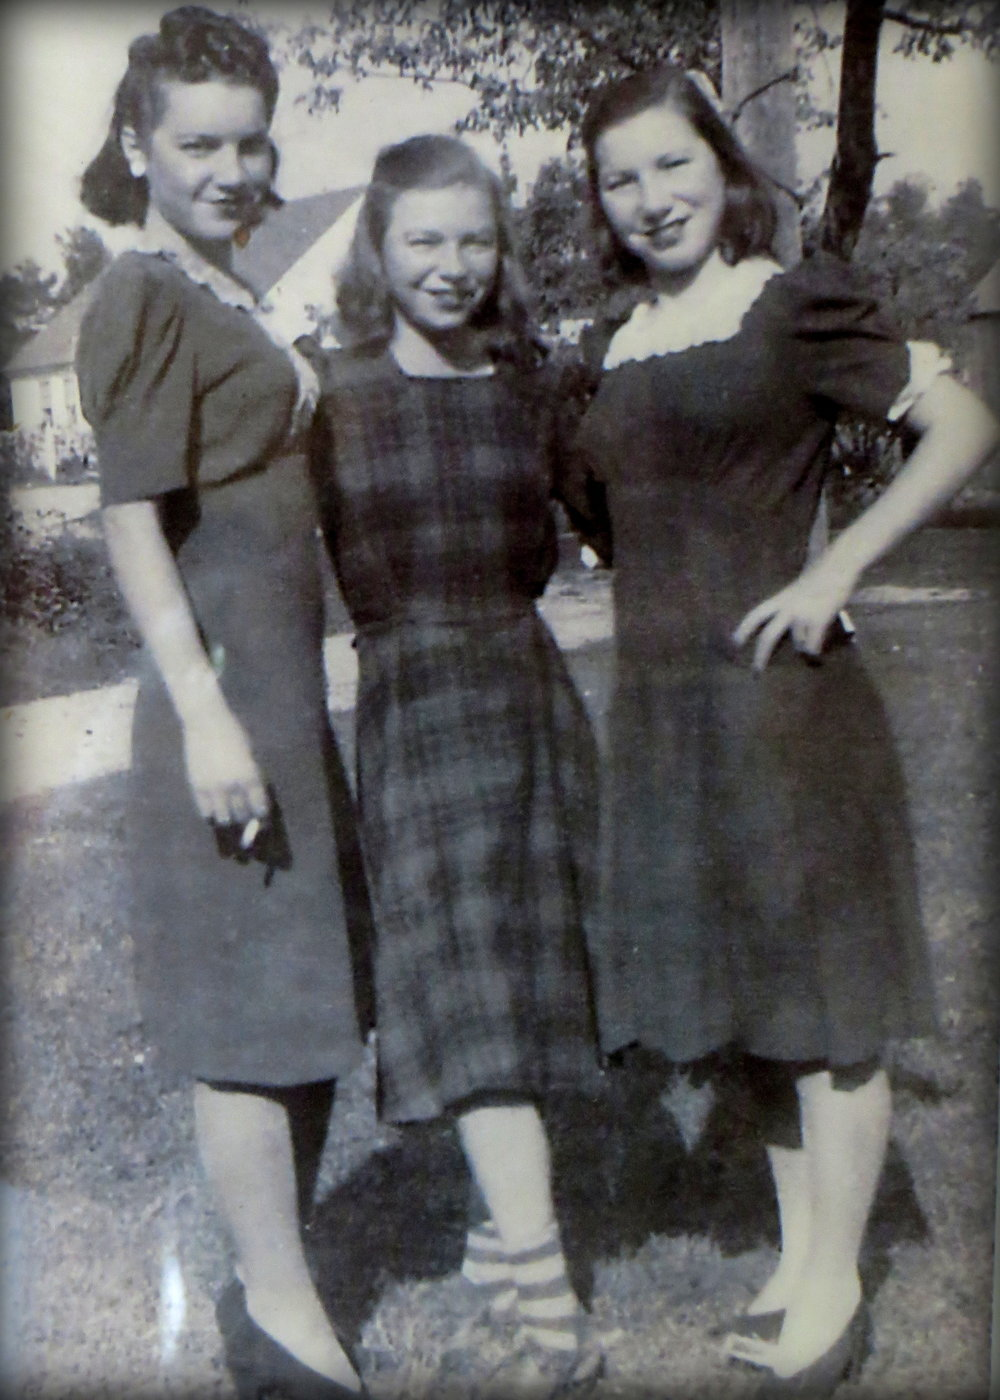 One of my favorite family 'sister' pix. That's Aunt Bette on the left, my mom in the middle and Aunt Jeannette on the right. Check out my Mom's socks!